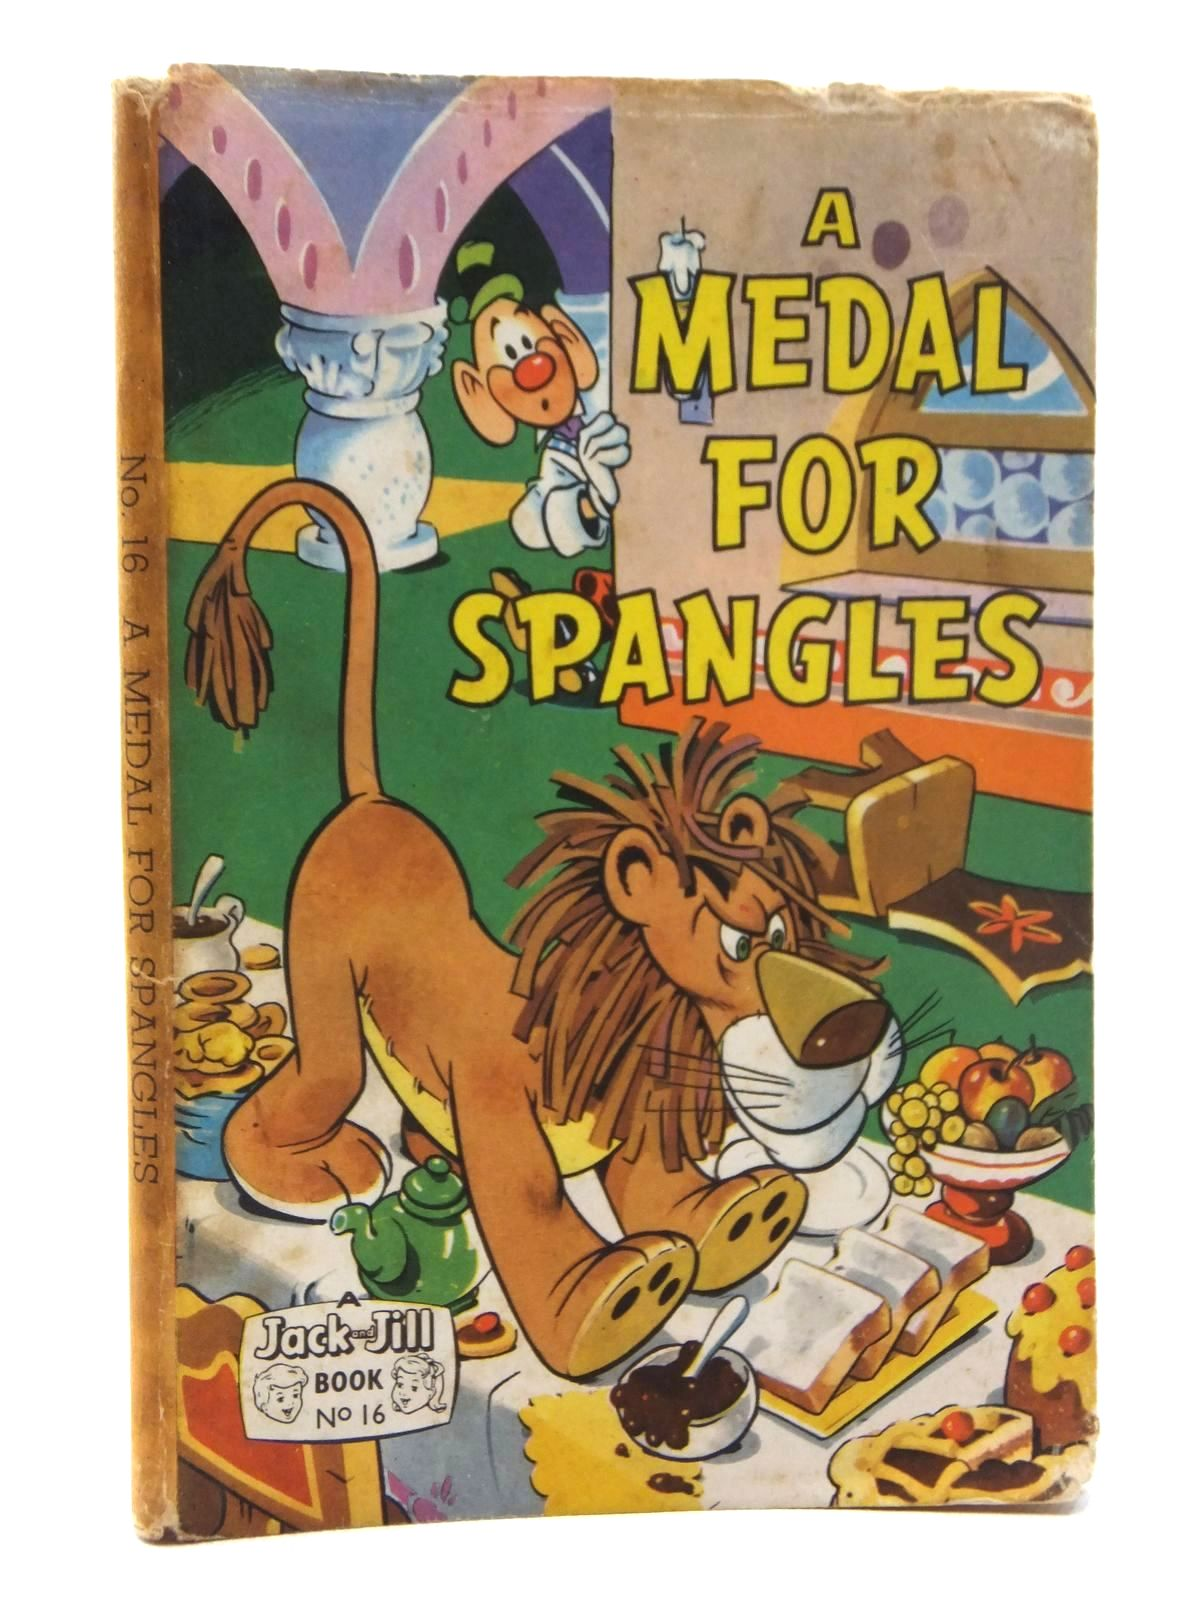 Photo of A MEDAL FOR SPANGLES published by Fleetway Publications Ltd. (STOCK CODE: 1317101)  for sale by Stella & Rose's Books